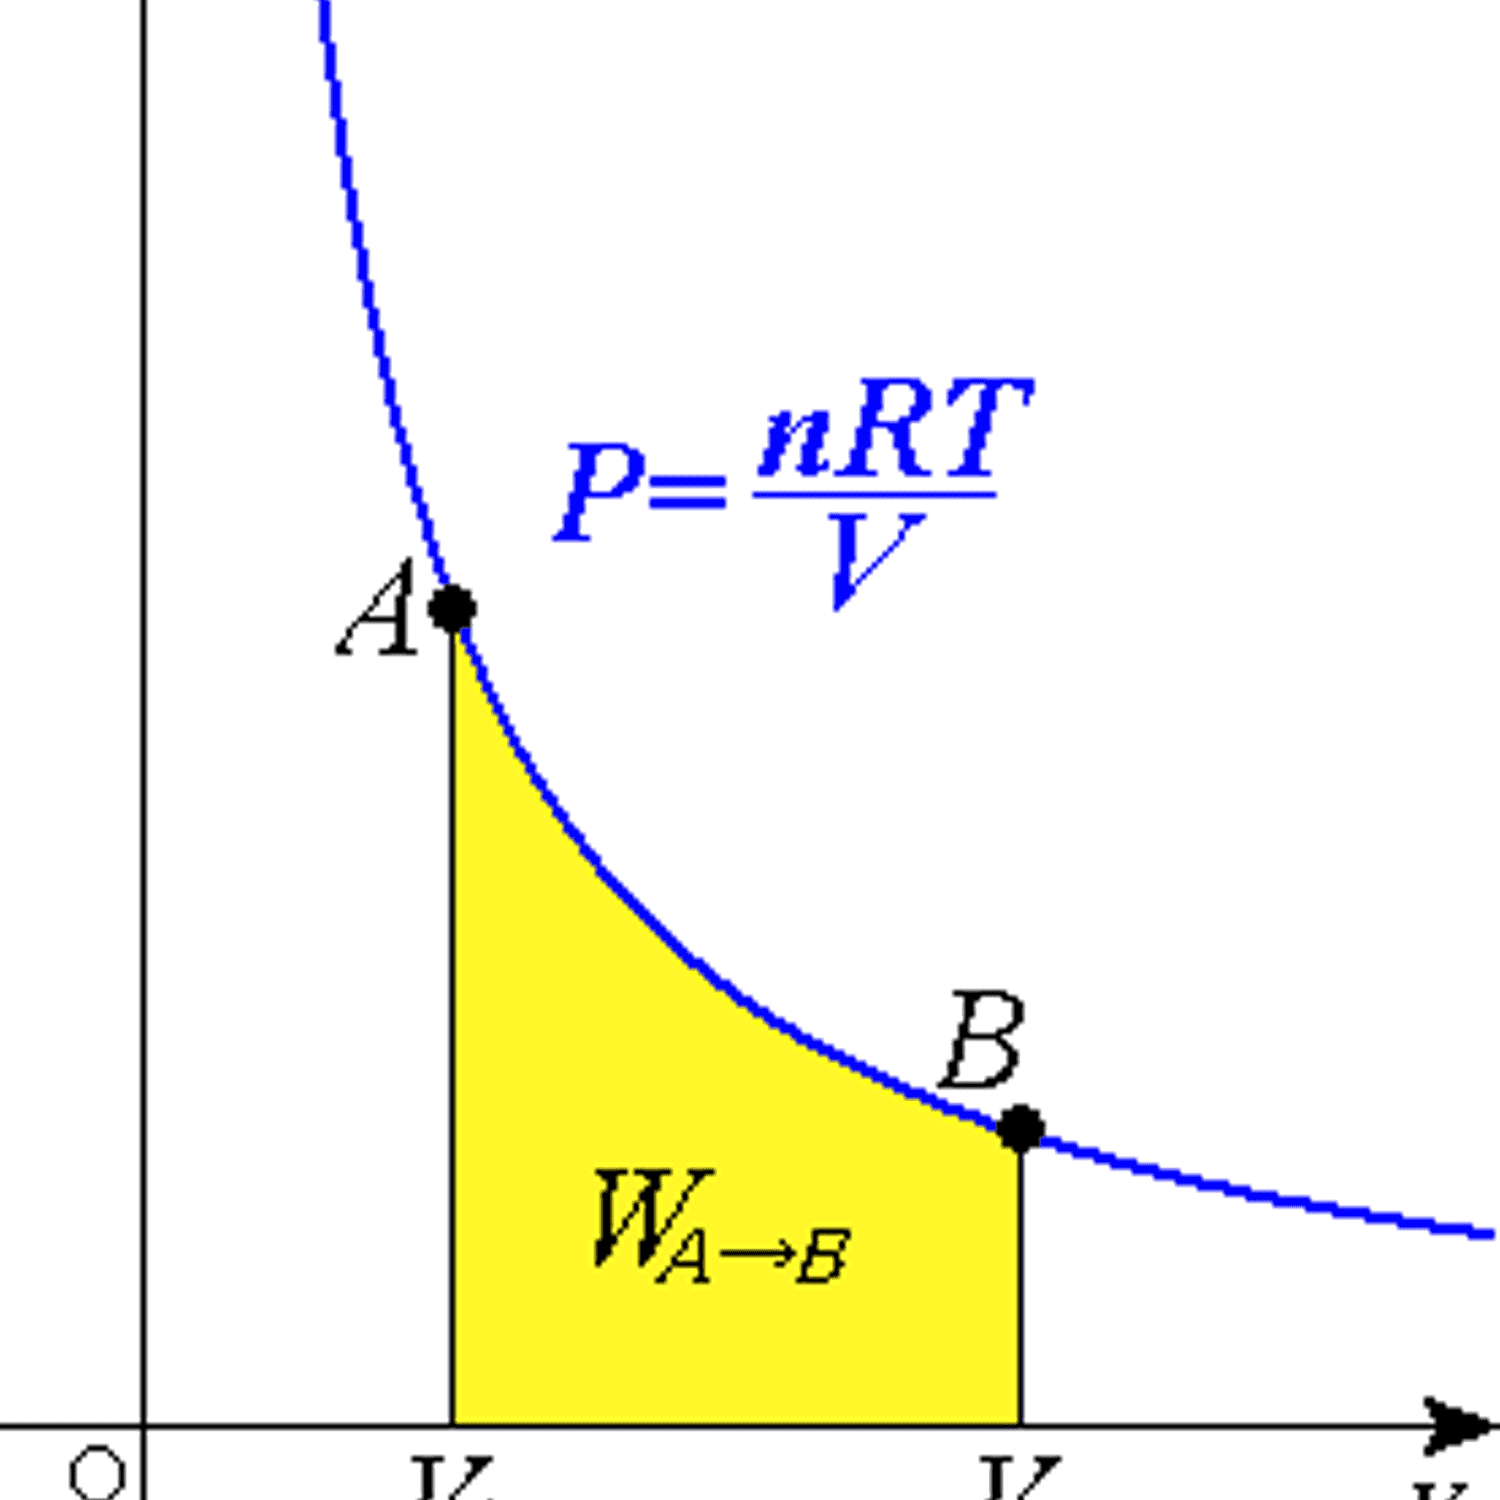 hight resolution of isothermal diagram